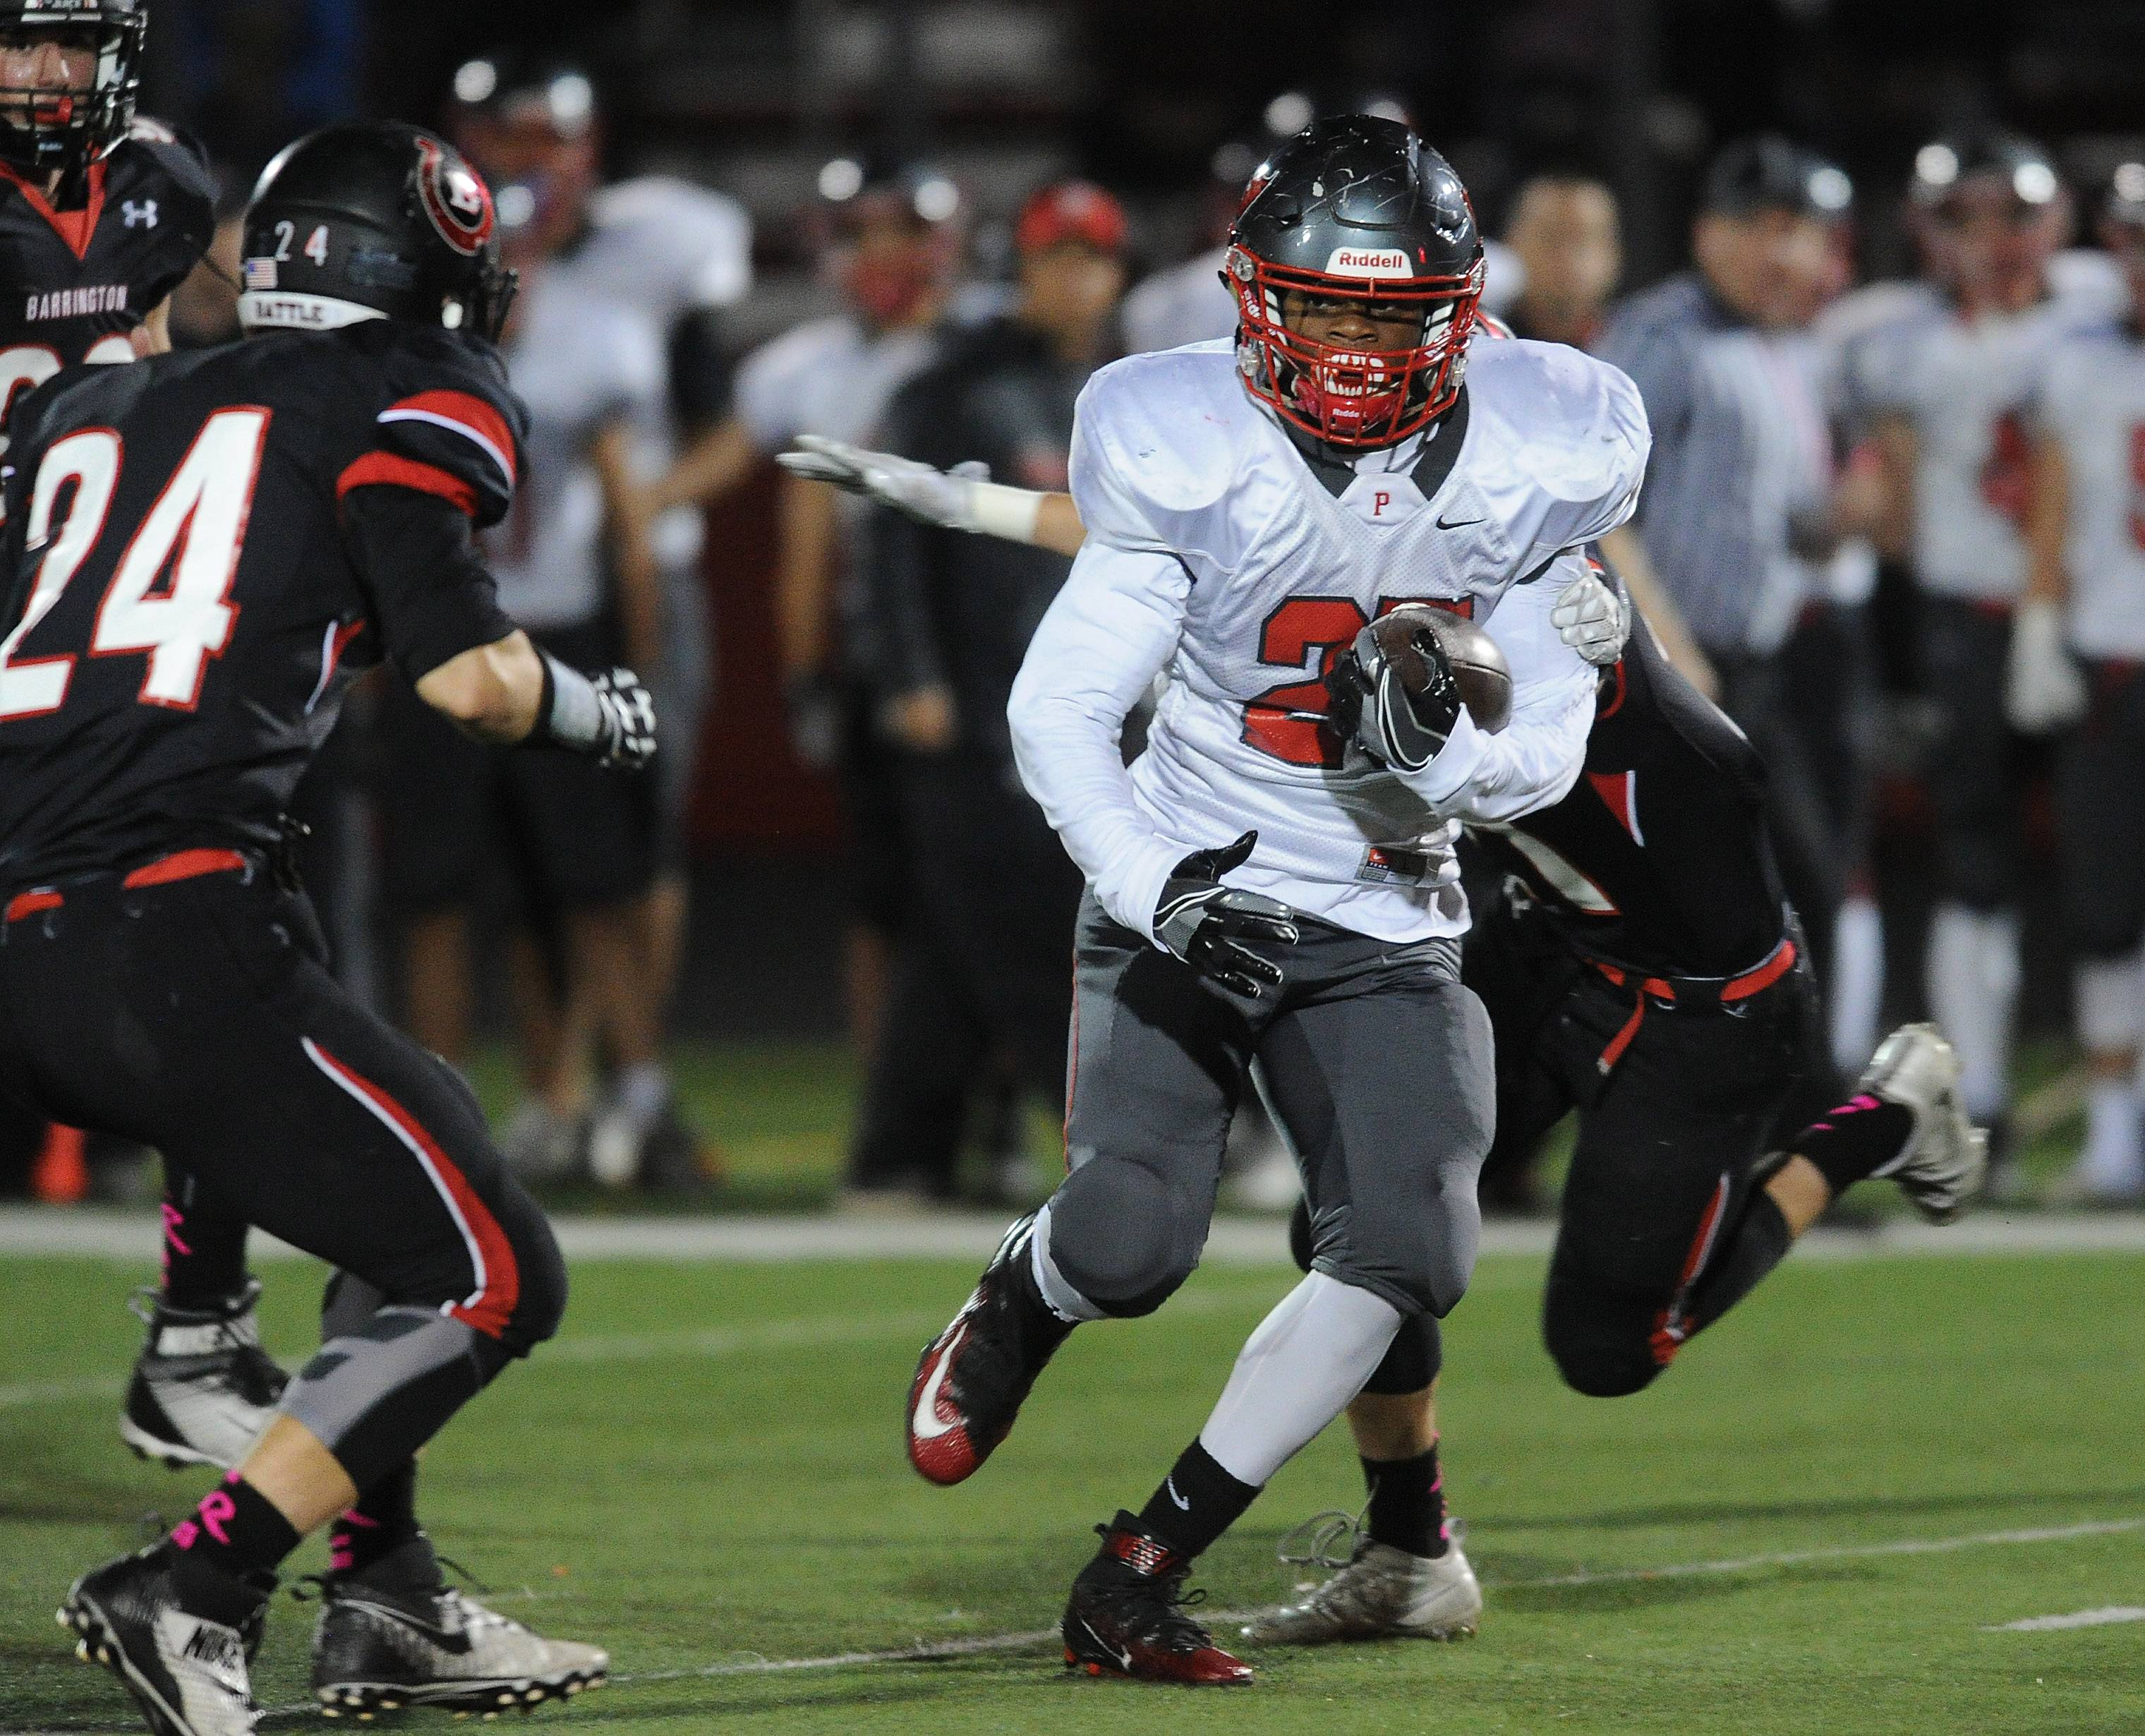 Palatine's Joshua Turner breaks through Barrington's defense on Friday at Barrington Community Stadium.